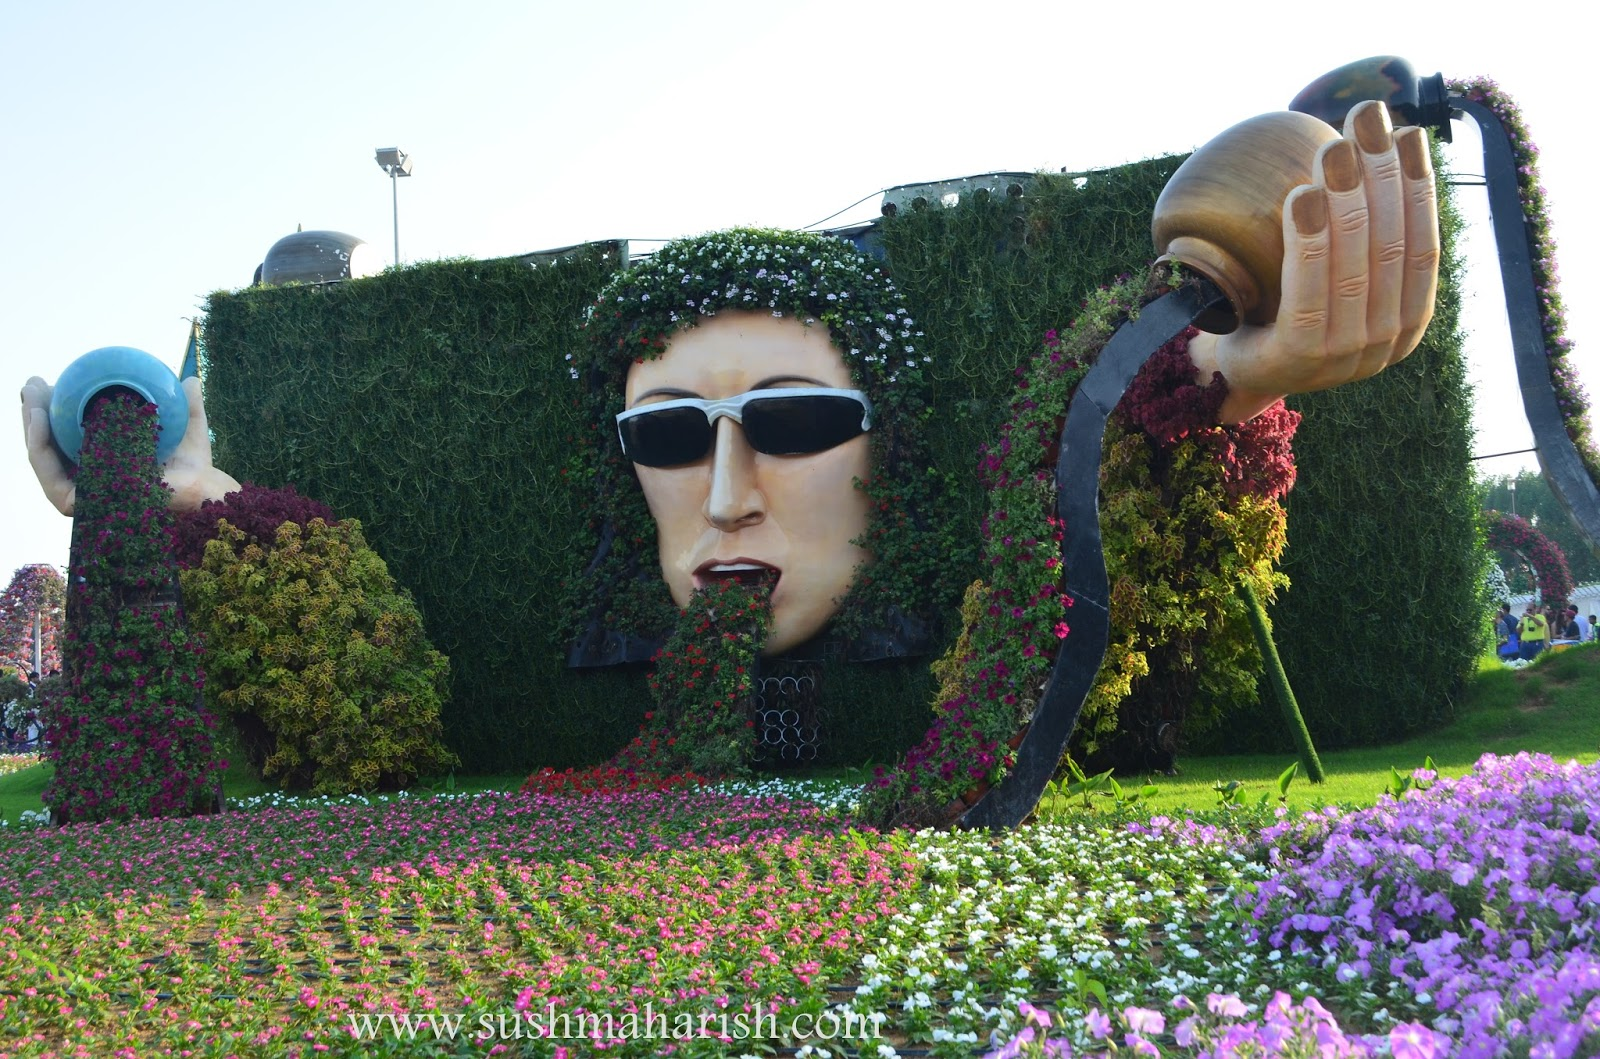 Exploring Beyond The Skyscrapers. Largest Flower Garden Of The World - Miracle Garden Dubai. 36